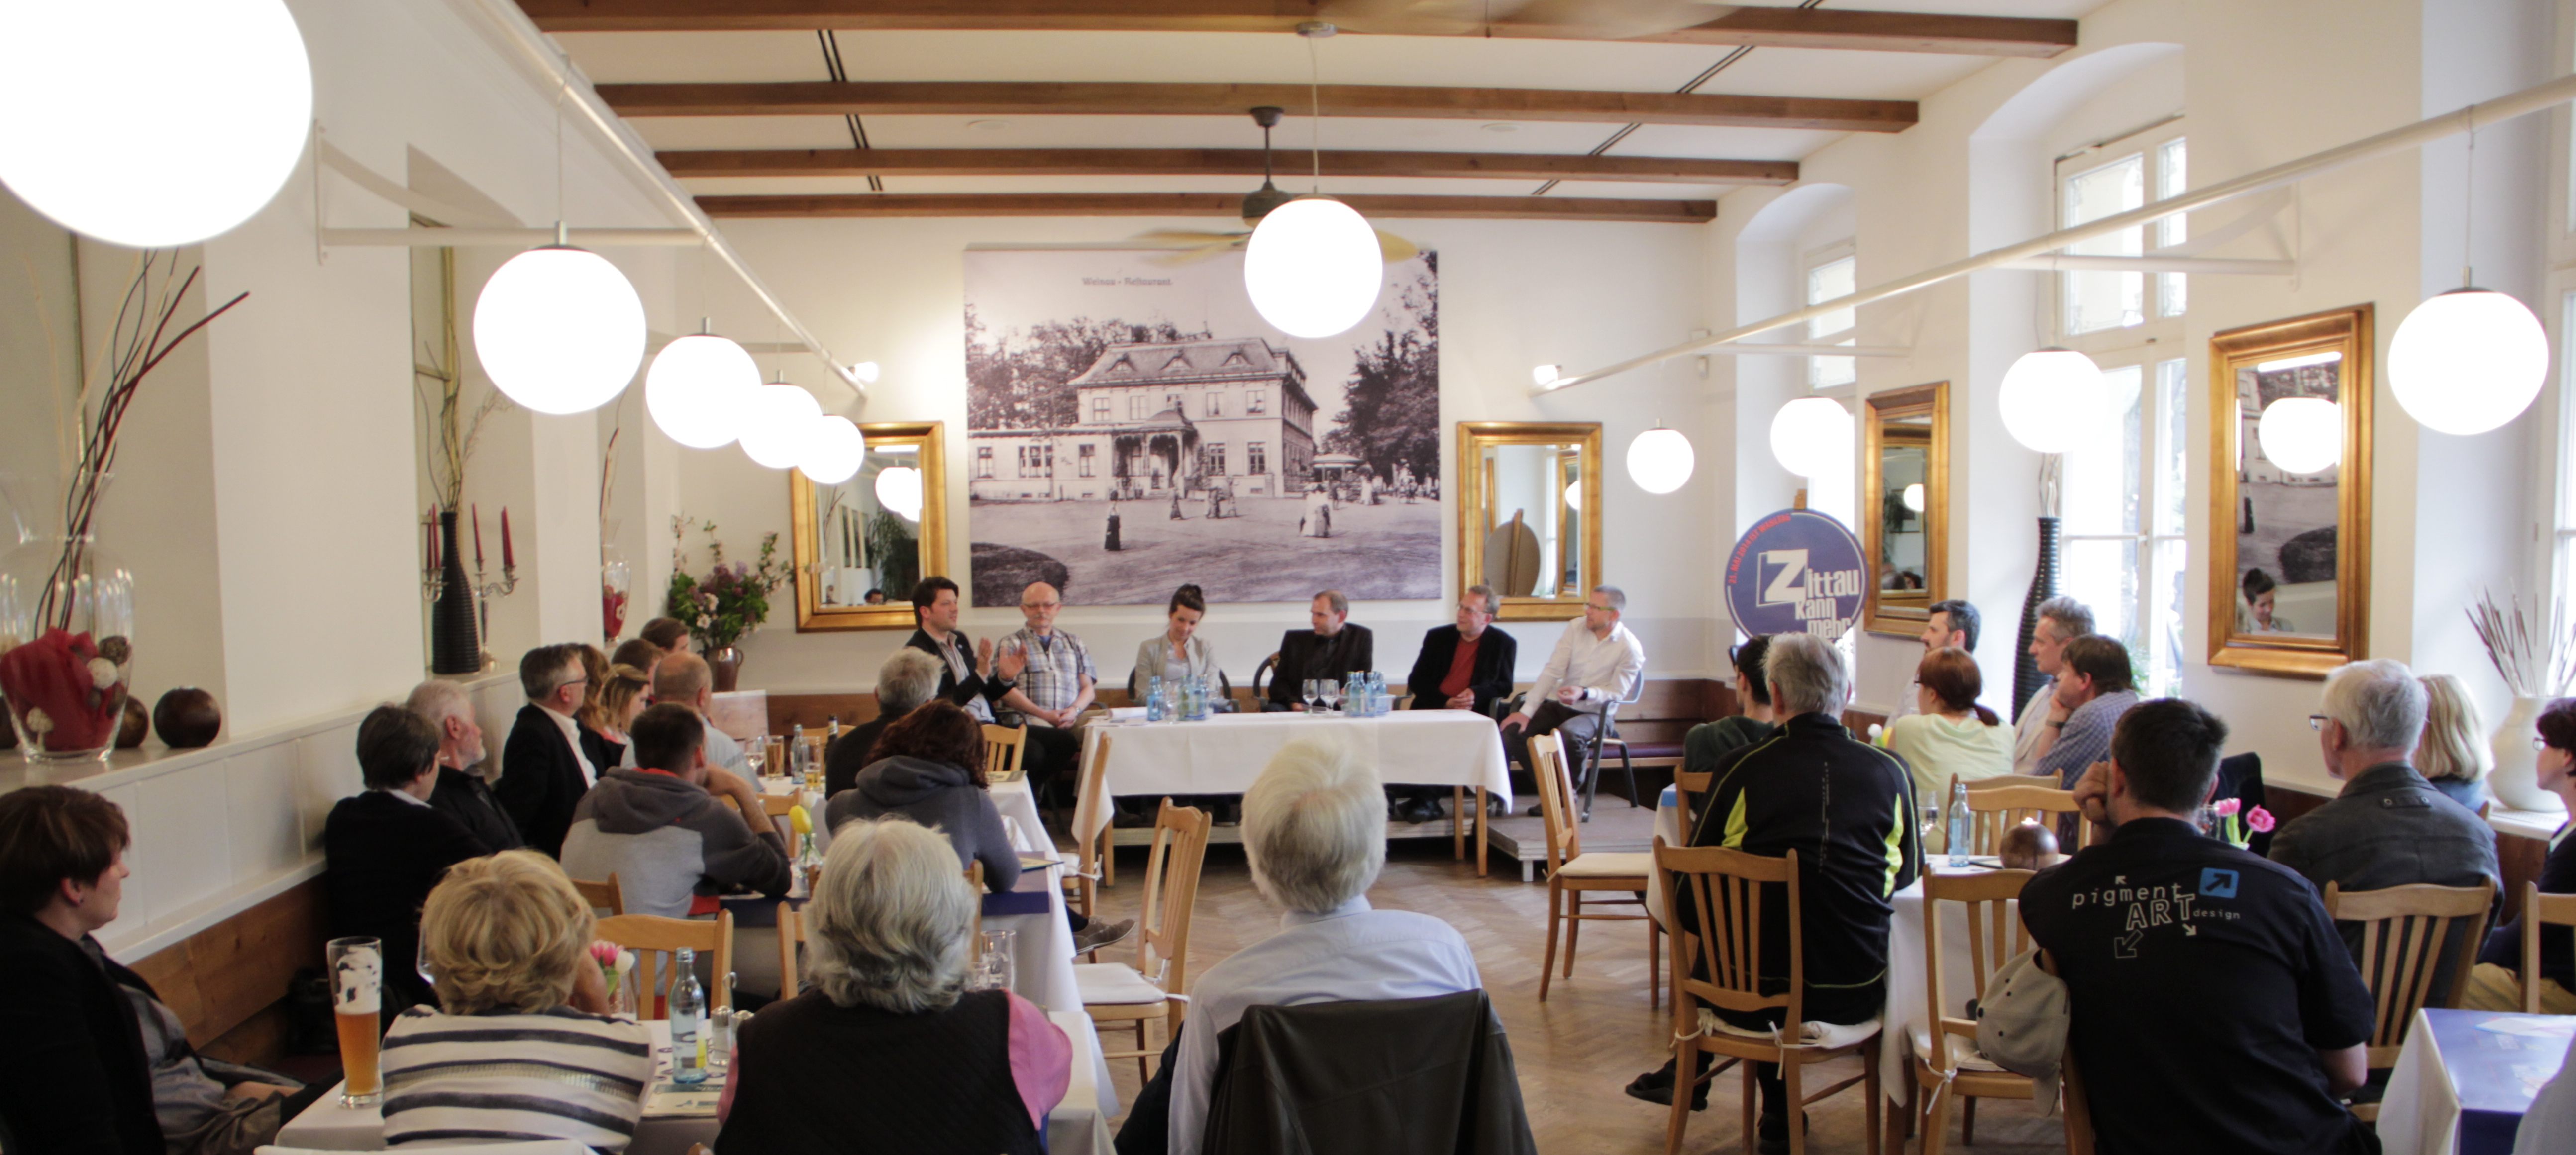 140424_Podiumsdiskussion_Tourismus